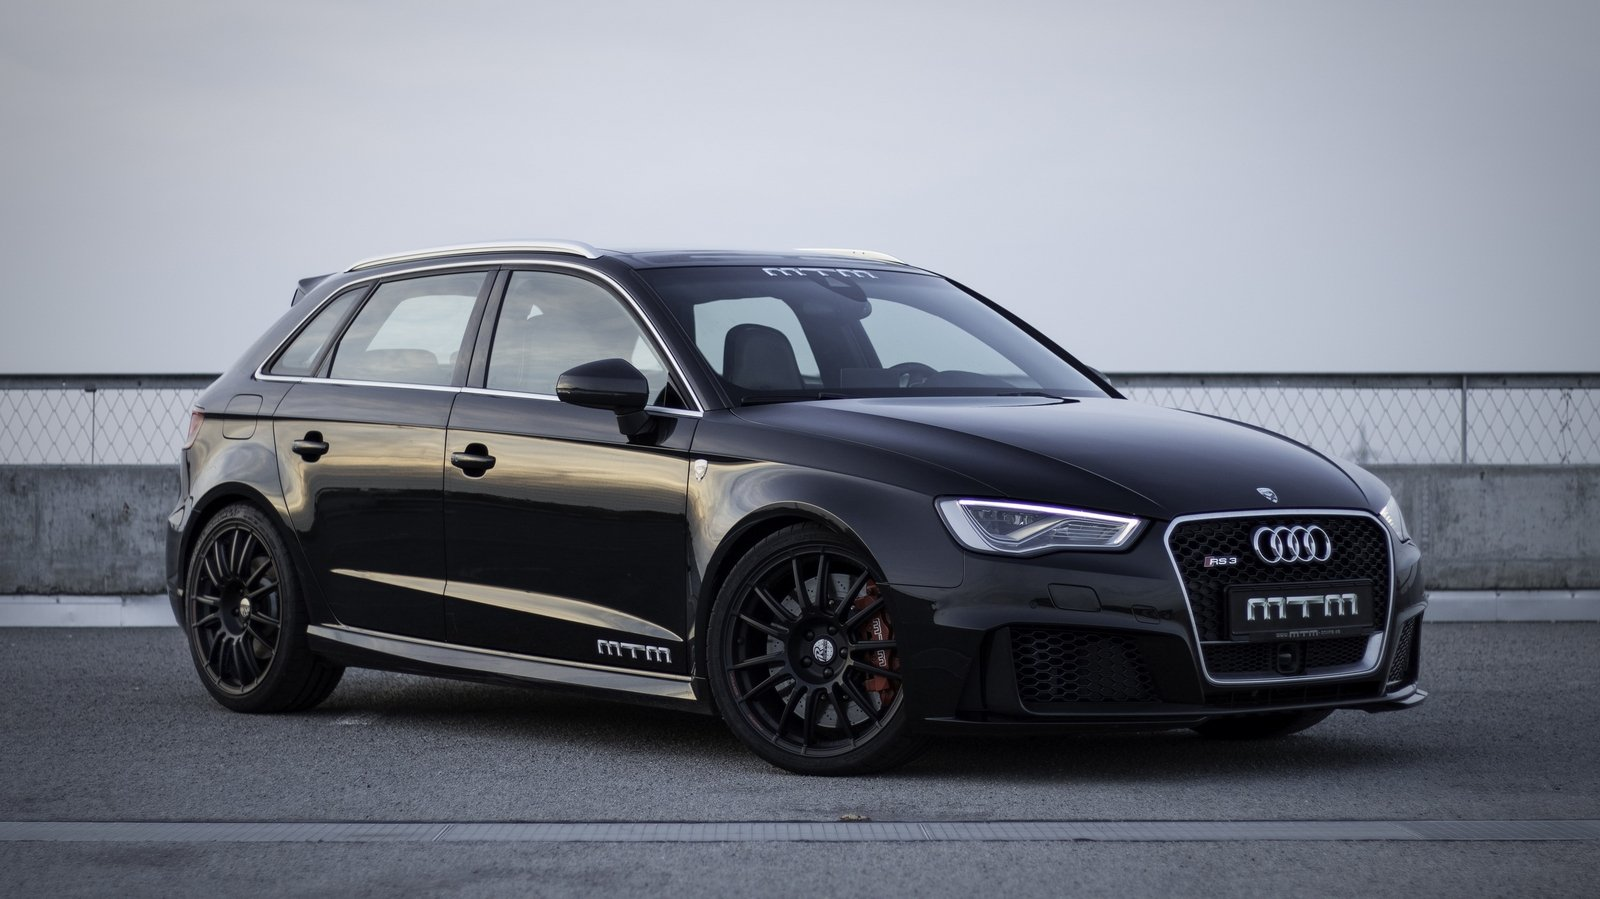 2015 audi rs3 v8 by mtm top speed. Black Bedroom Furniture Sets. Home Design Ideas